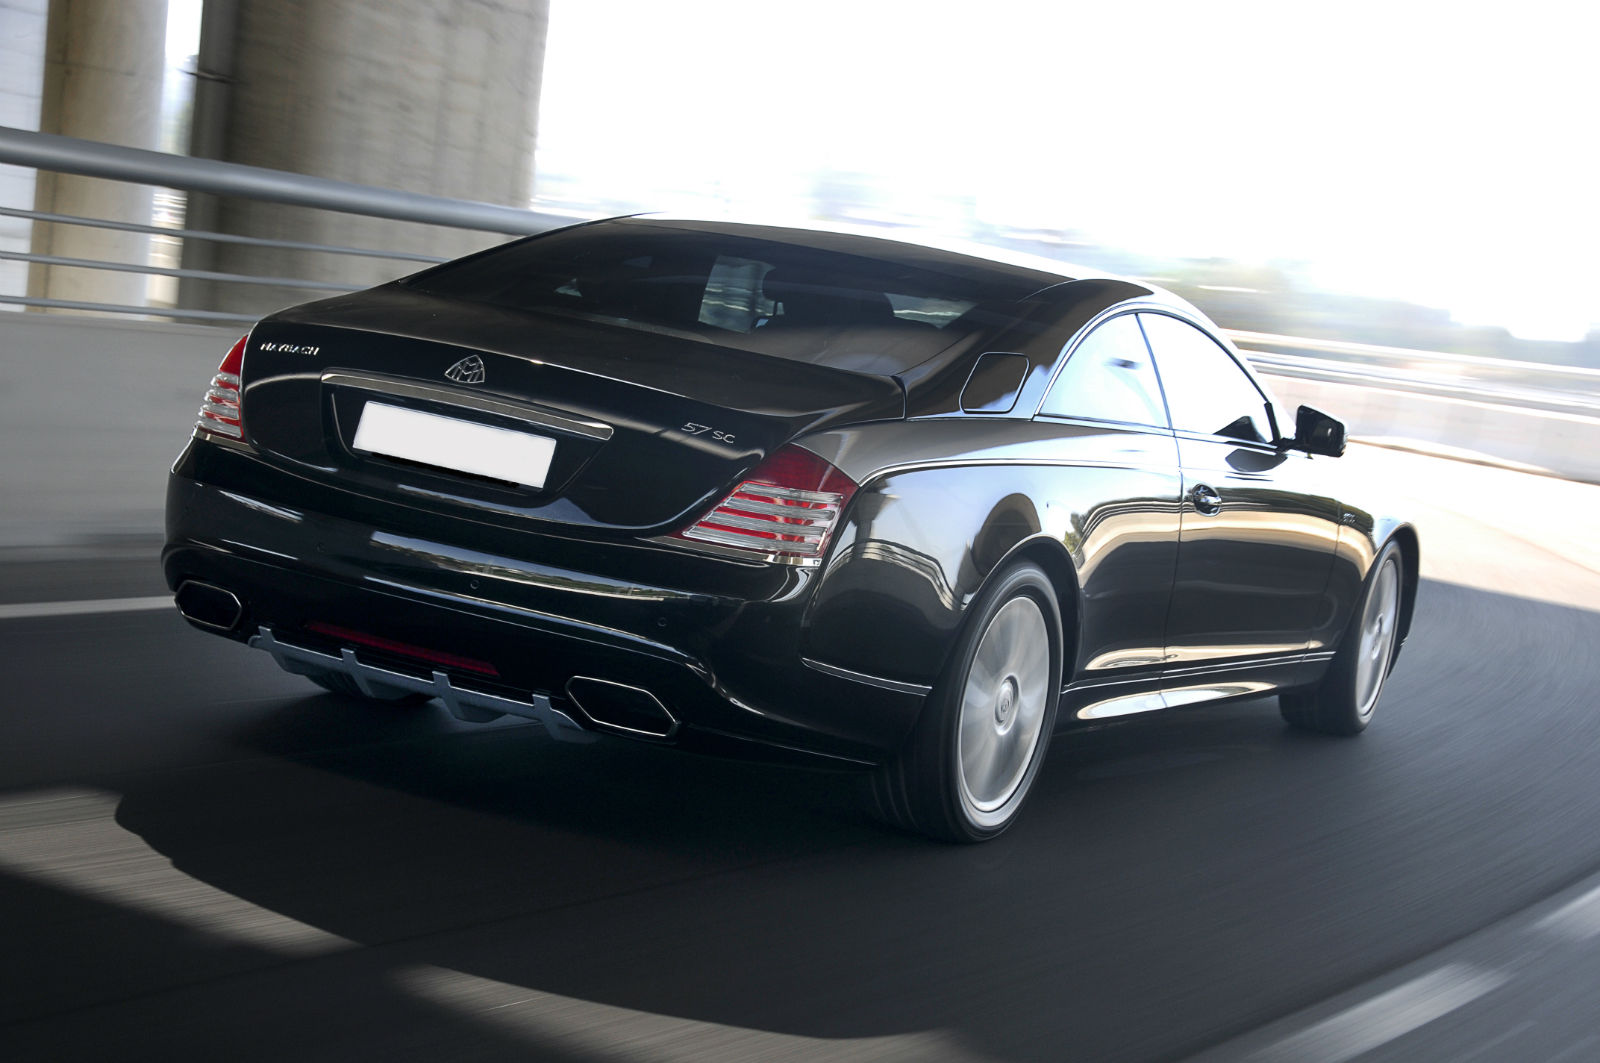 dc dream cars revives the maybach 57 s coupe - mercedesblog